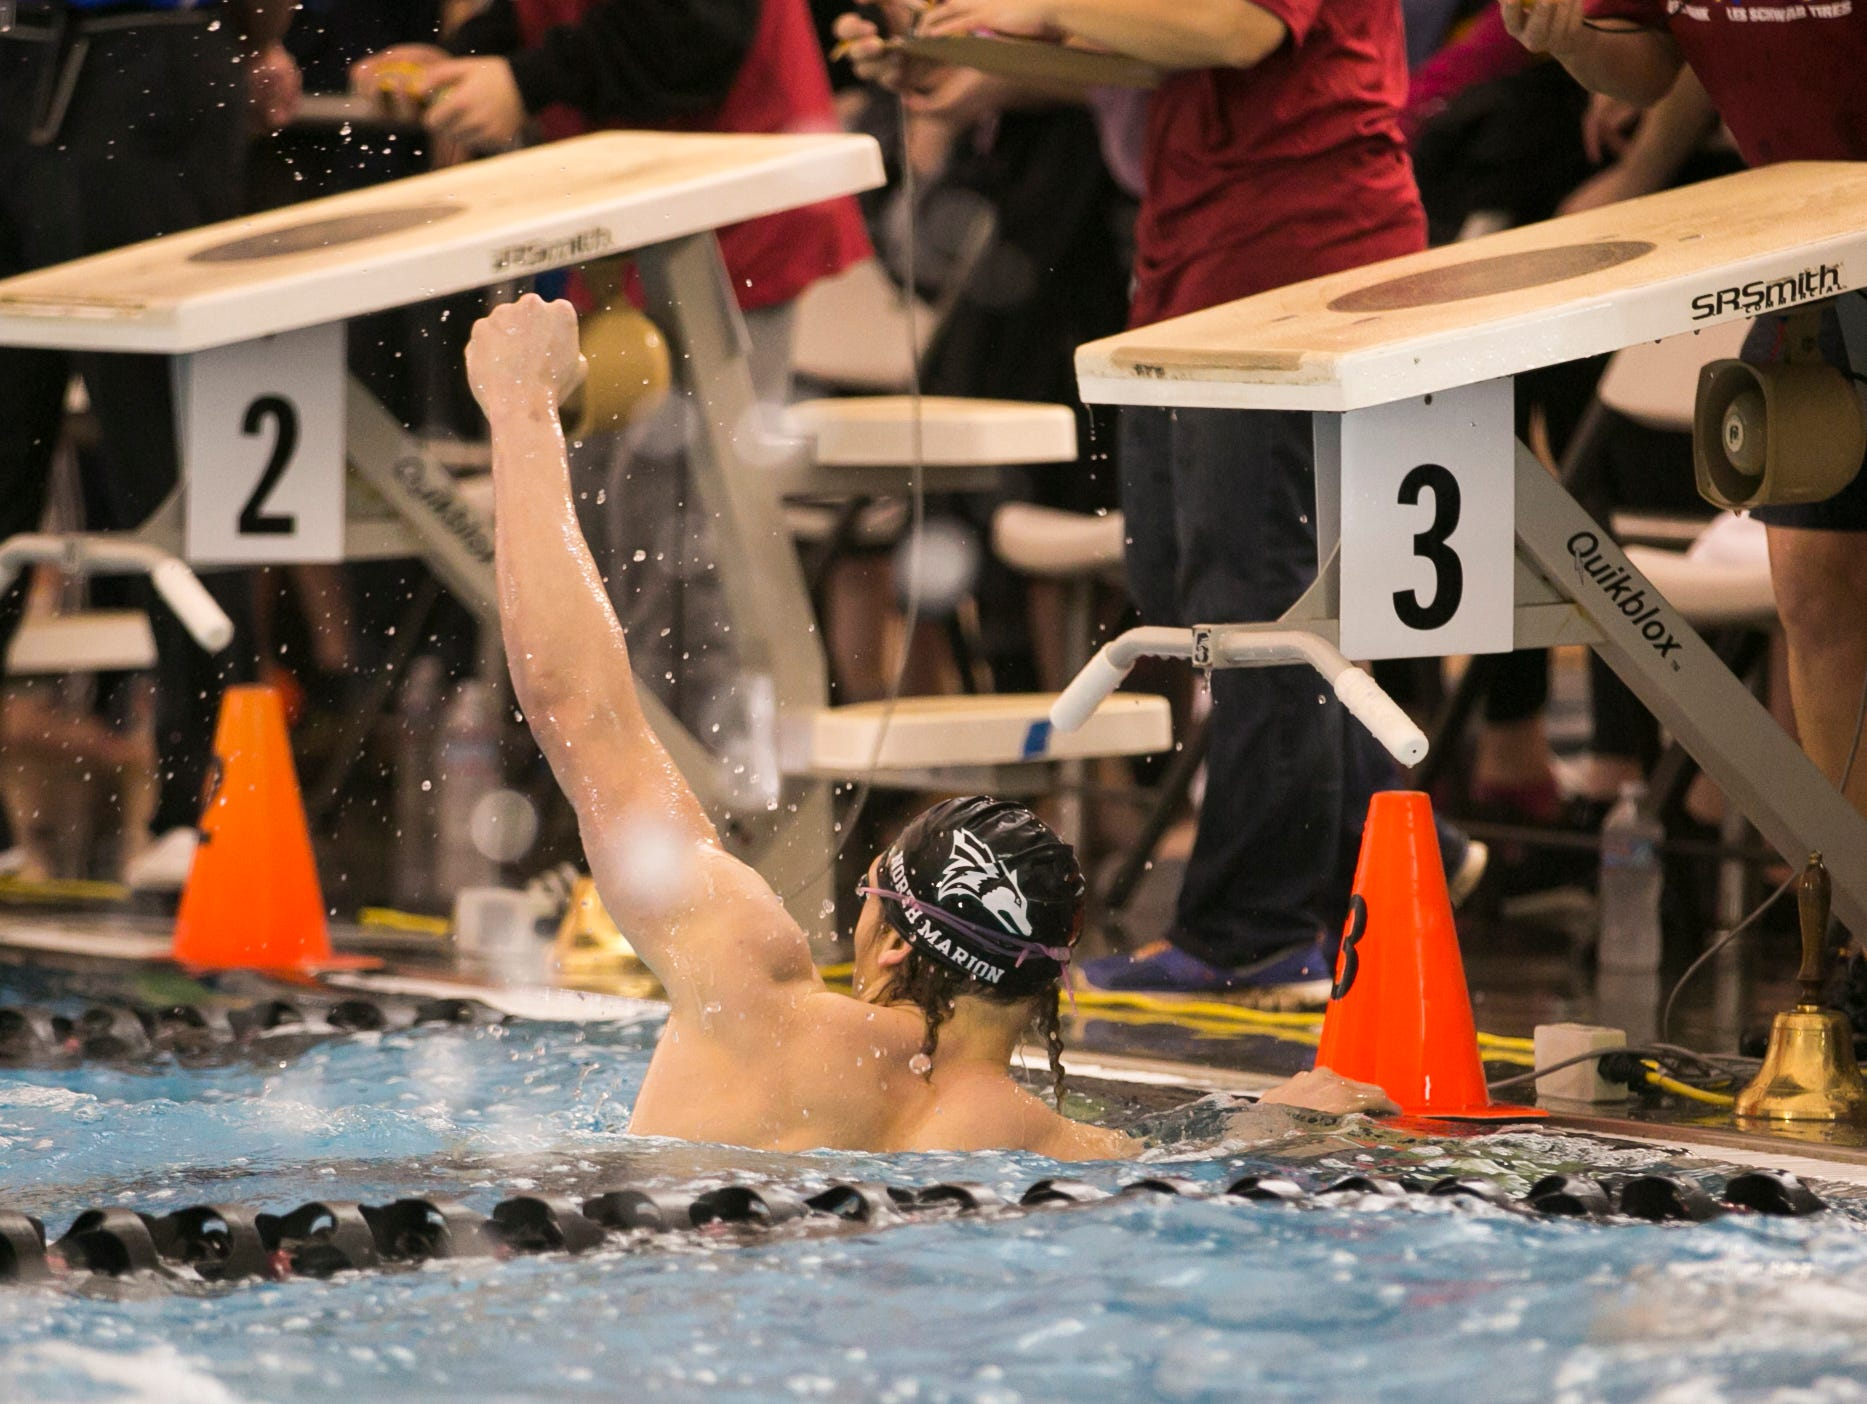 North Marion's Noah Norris pumps his fist in the air after swimming the boys 100 yard freestyle at the OSAA Swimming State Championships at Mount Hood Community College on Saturday, Feb. 20, 2016.